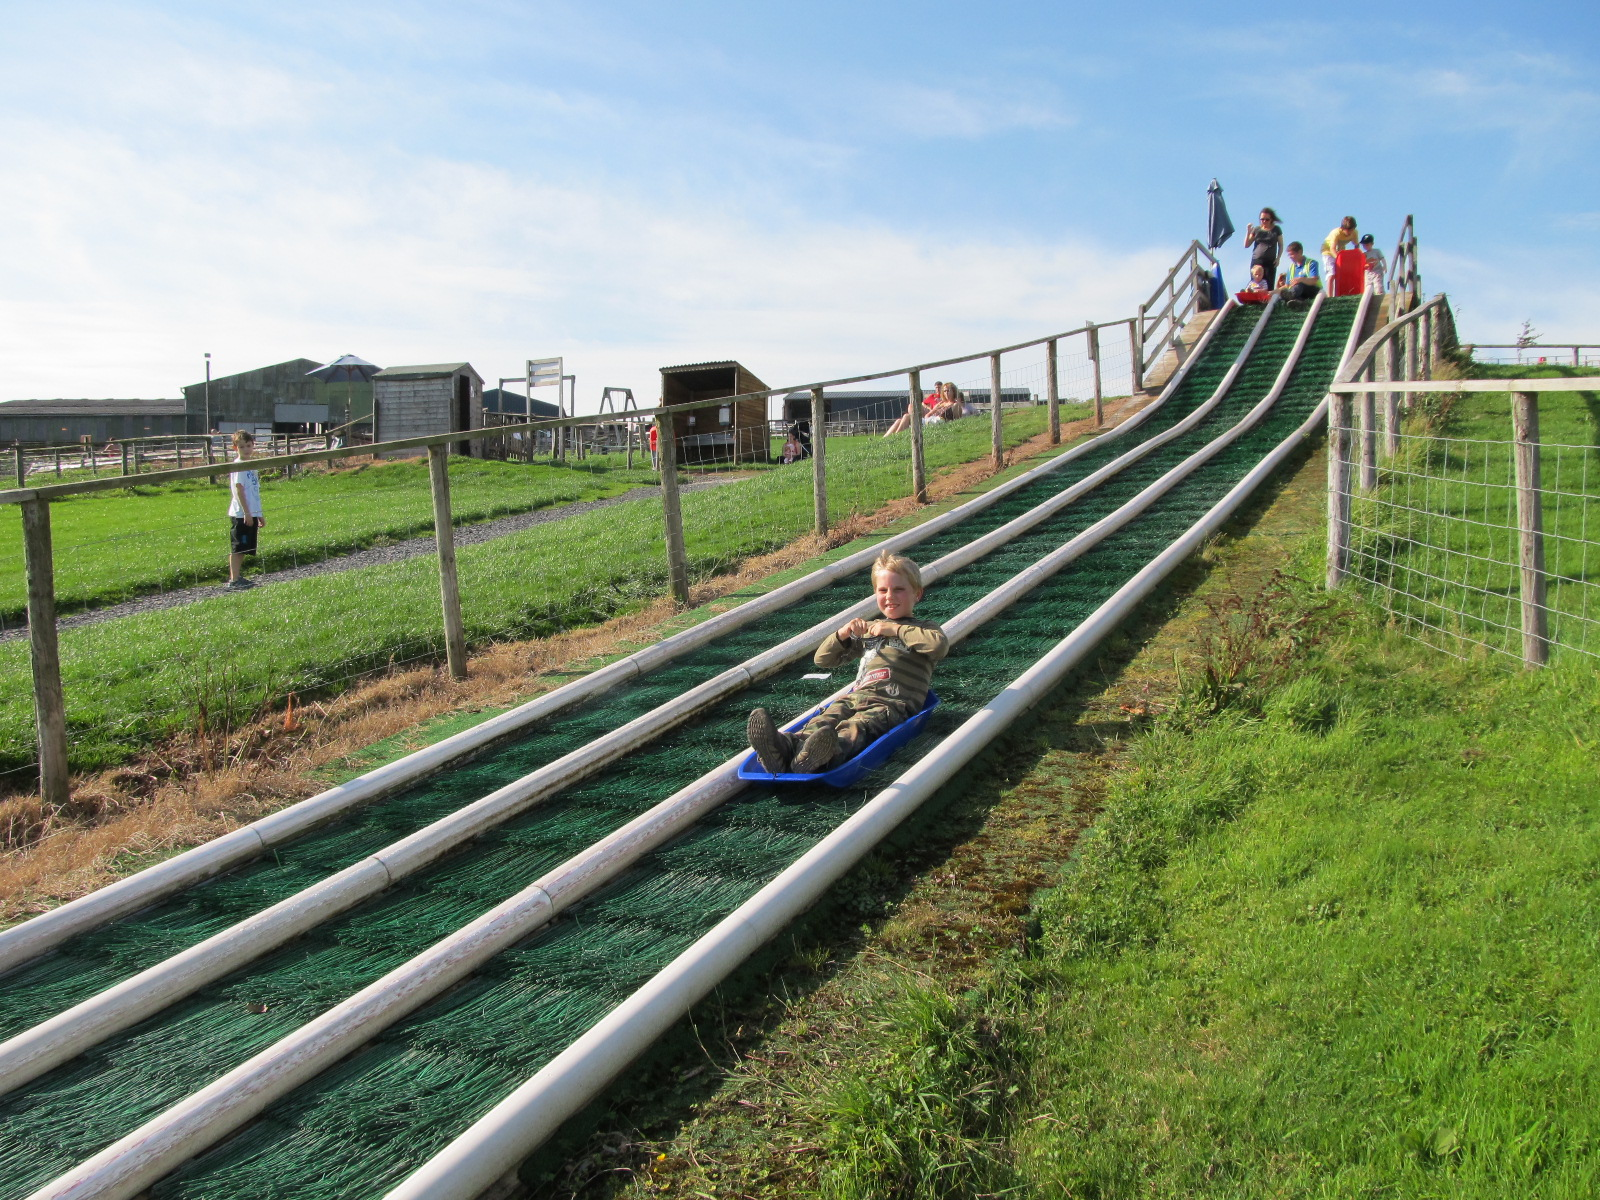 Cantref Adventure Farm and Riding Centre